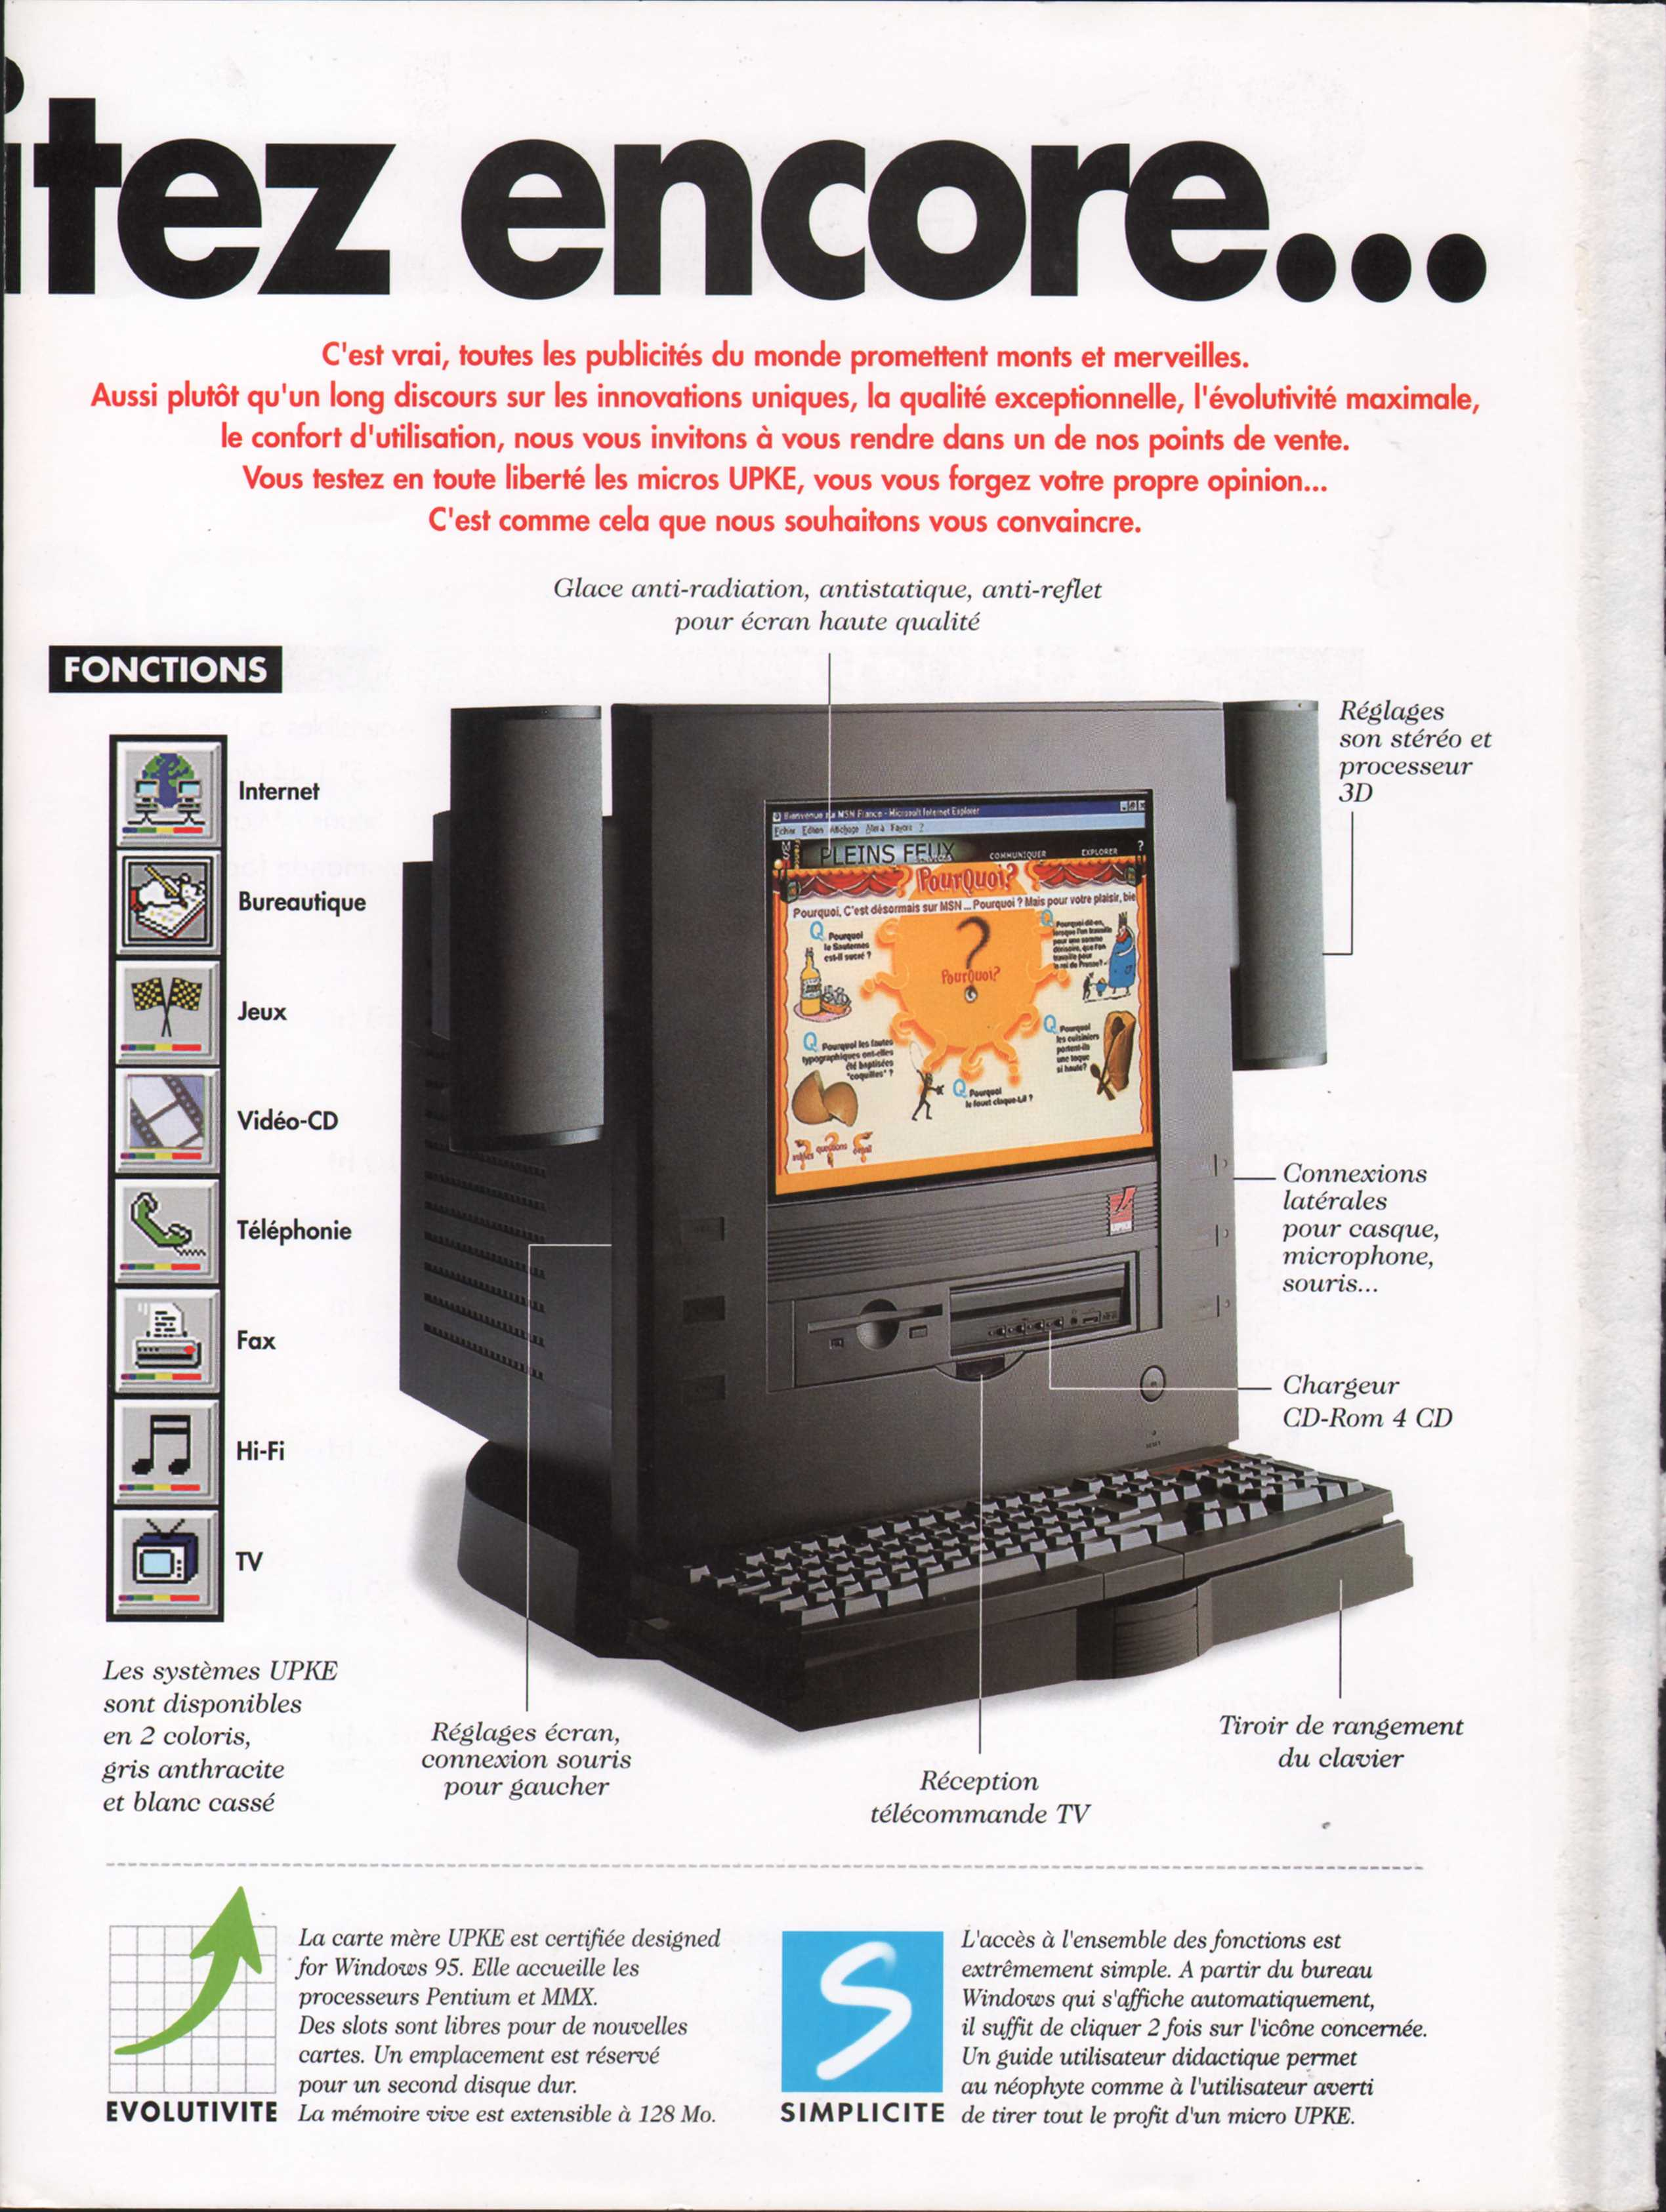 http://download.abandonware.org/magazines/PC%20Direct/pcdirect_numero053/PC%20Direct%20053%20-%20Page%20003%20%281997-04%29.jpg